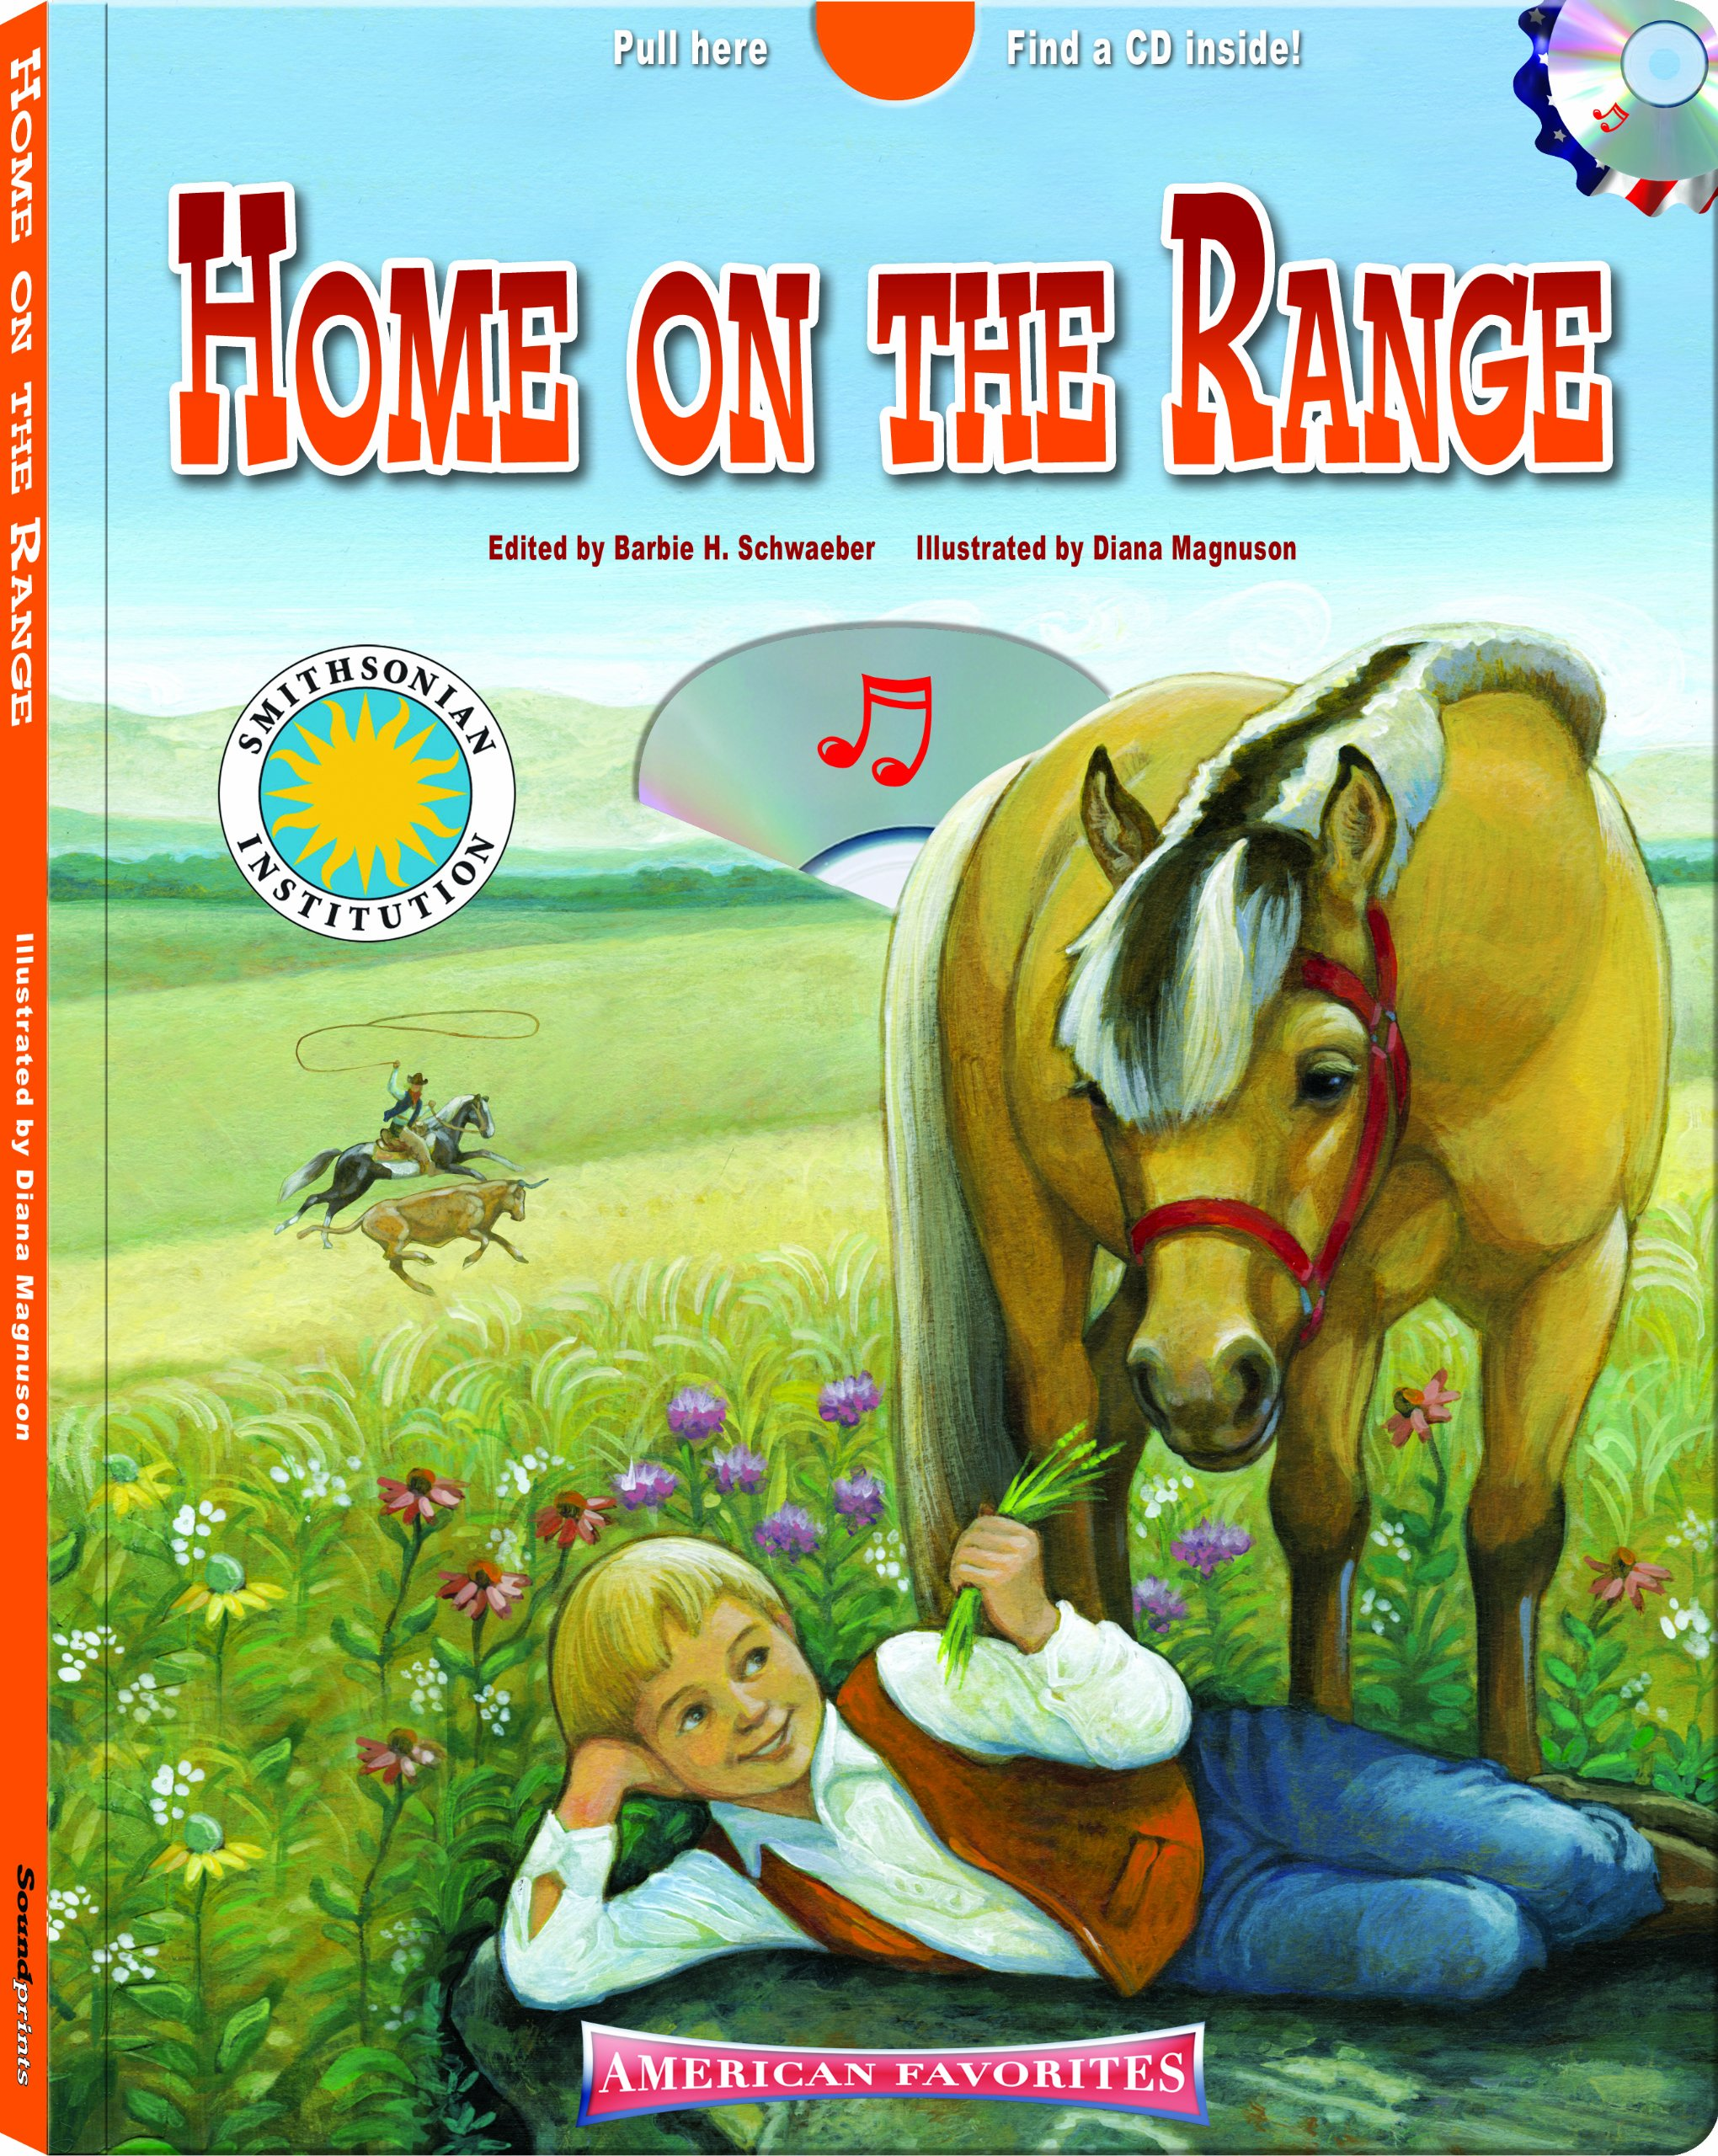 Read Online Home On the Range - a Smithsonian American Favorites Book (with sing-along audiobook CD and music sheet) pdf epub